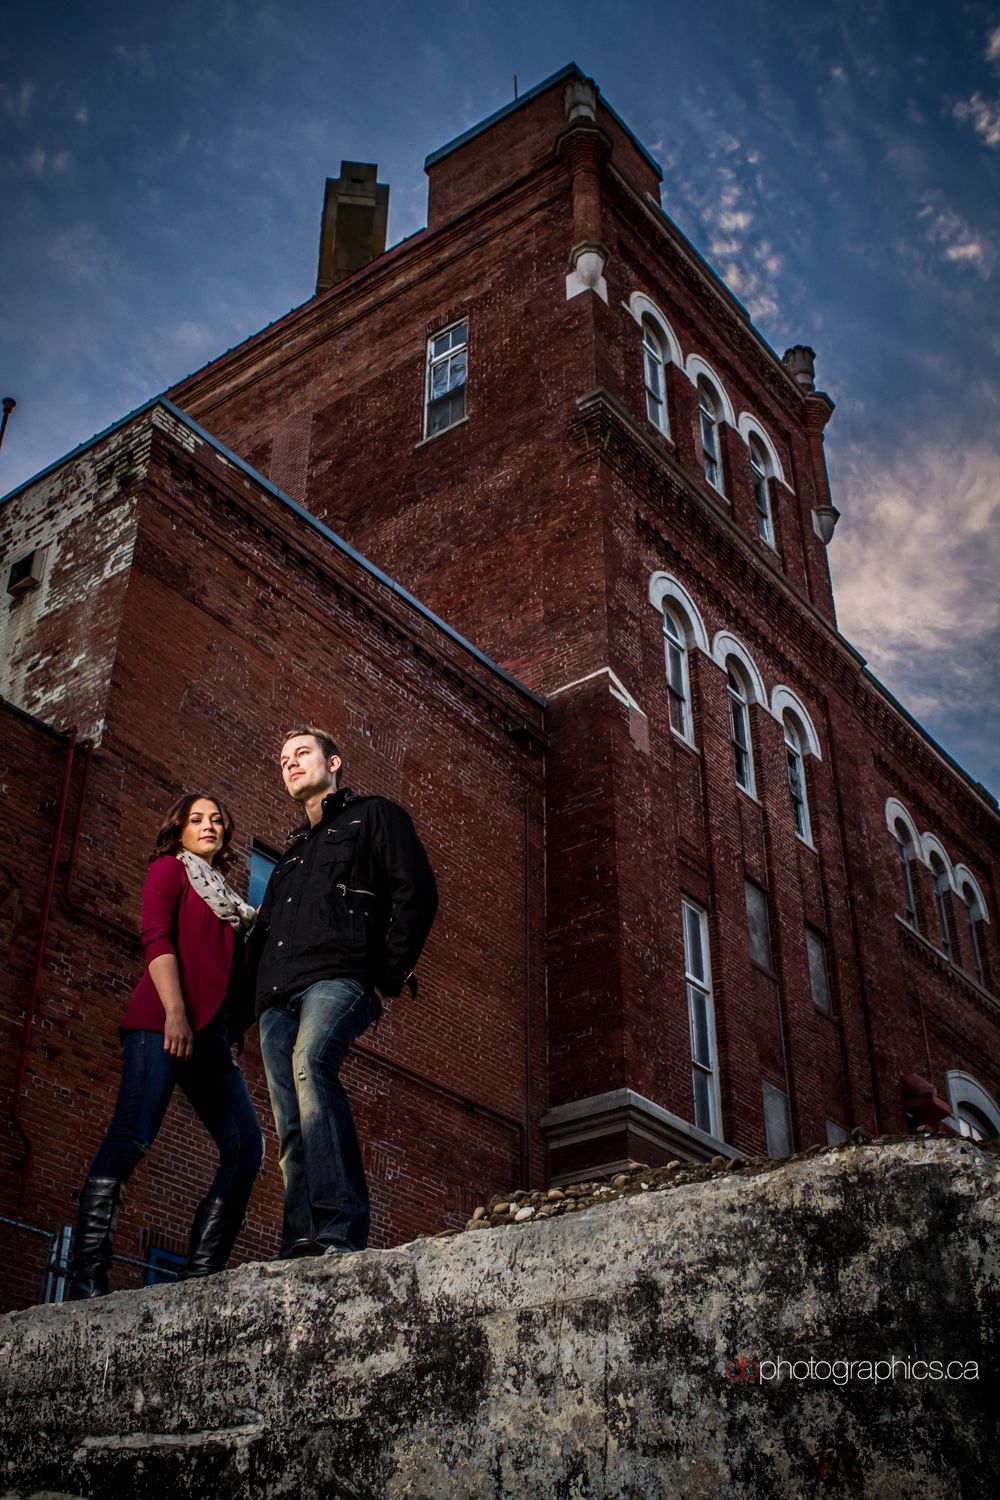 Gaea & Kurt - Engagement Session - 20131020 - 0056.jpg